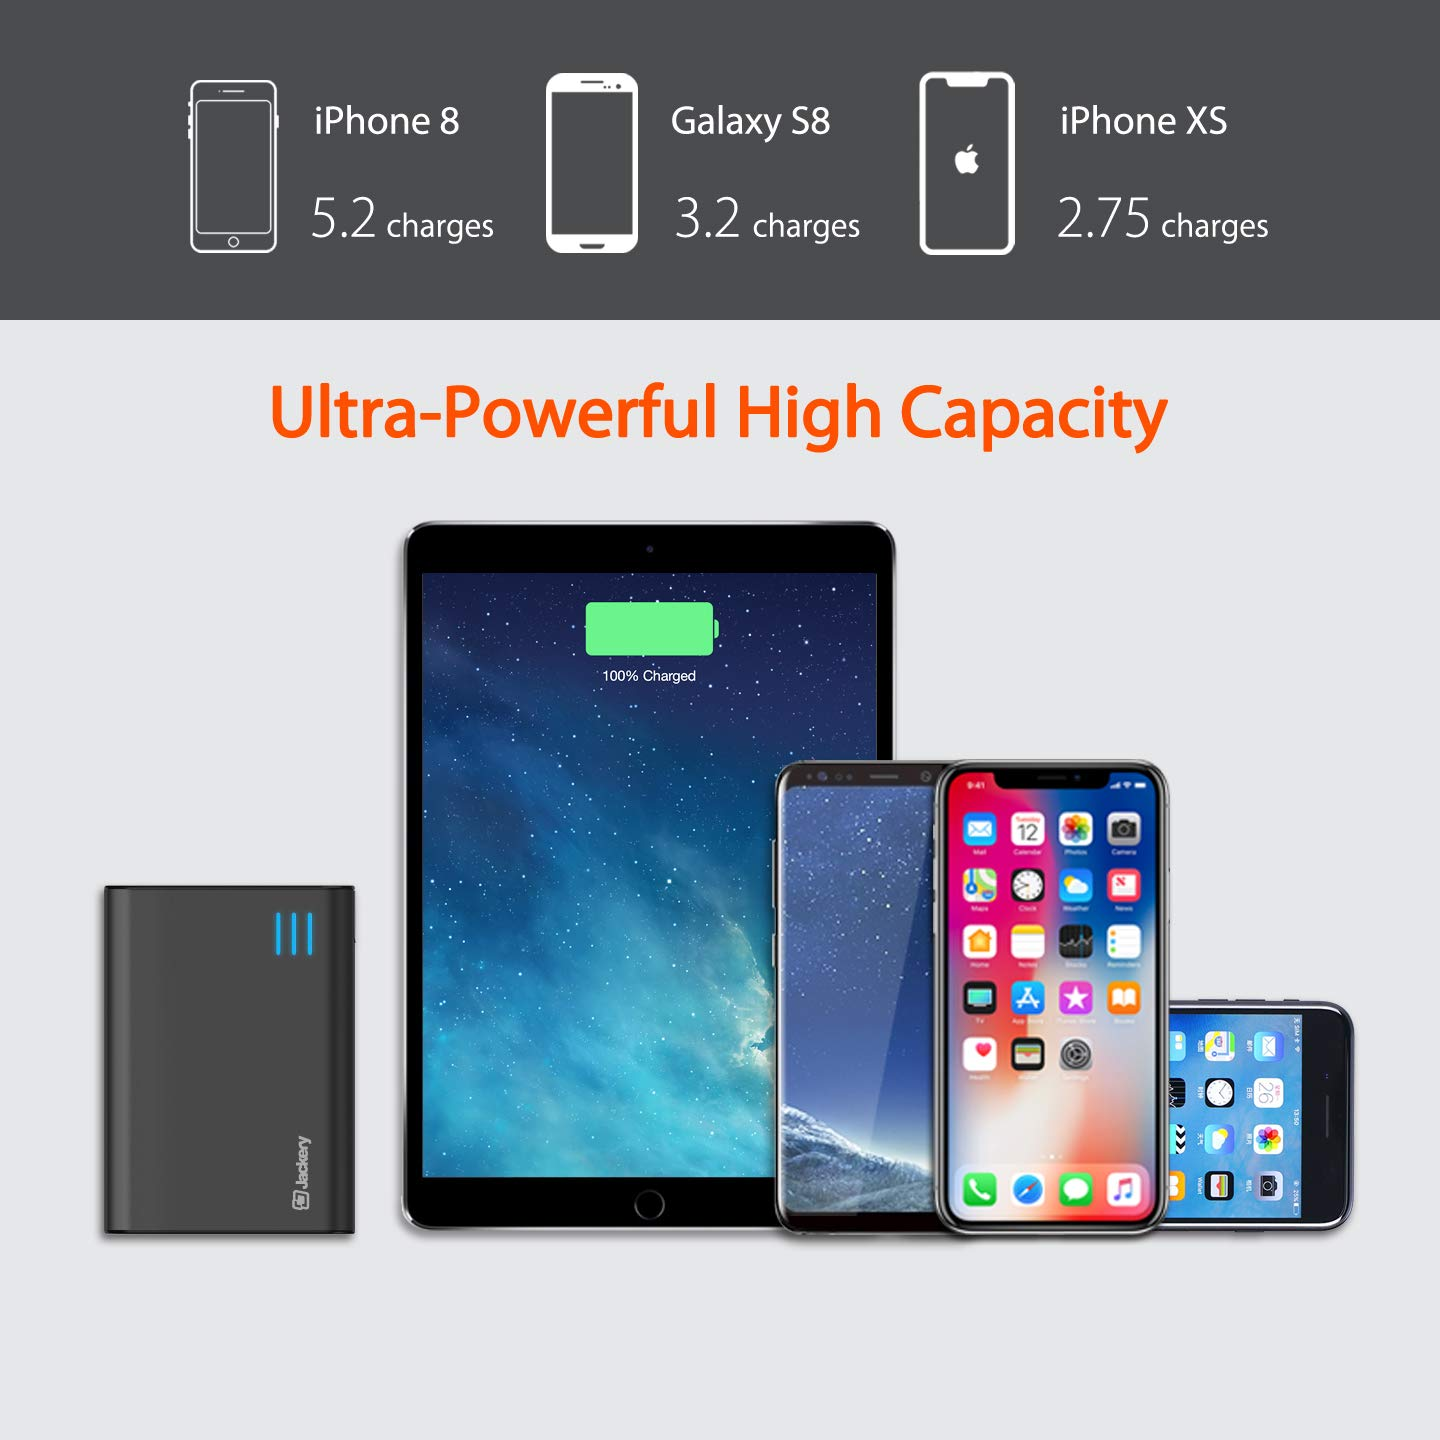 Jackery Portable External Charger Giant 12000mah Dual Amazoncom Computer Circuit Board Cpu Iphone 6 Plus Armor Phone Case Usb Output Battery Pack Travel Backup Power Bank With Emergency Led Flashlight For